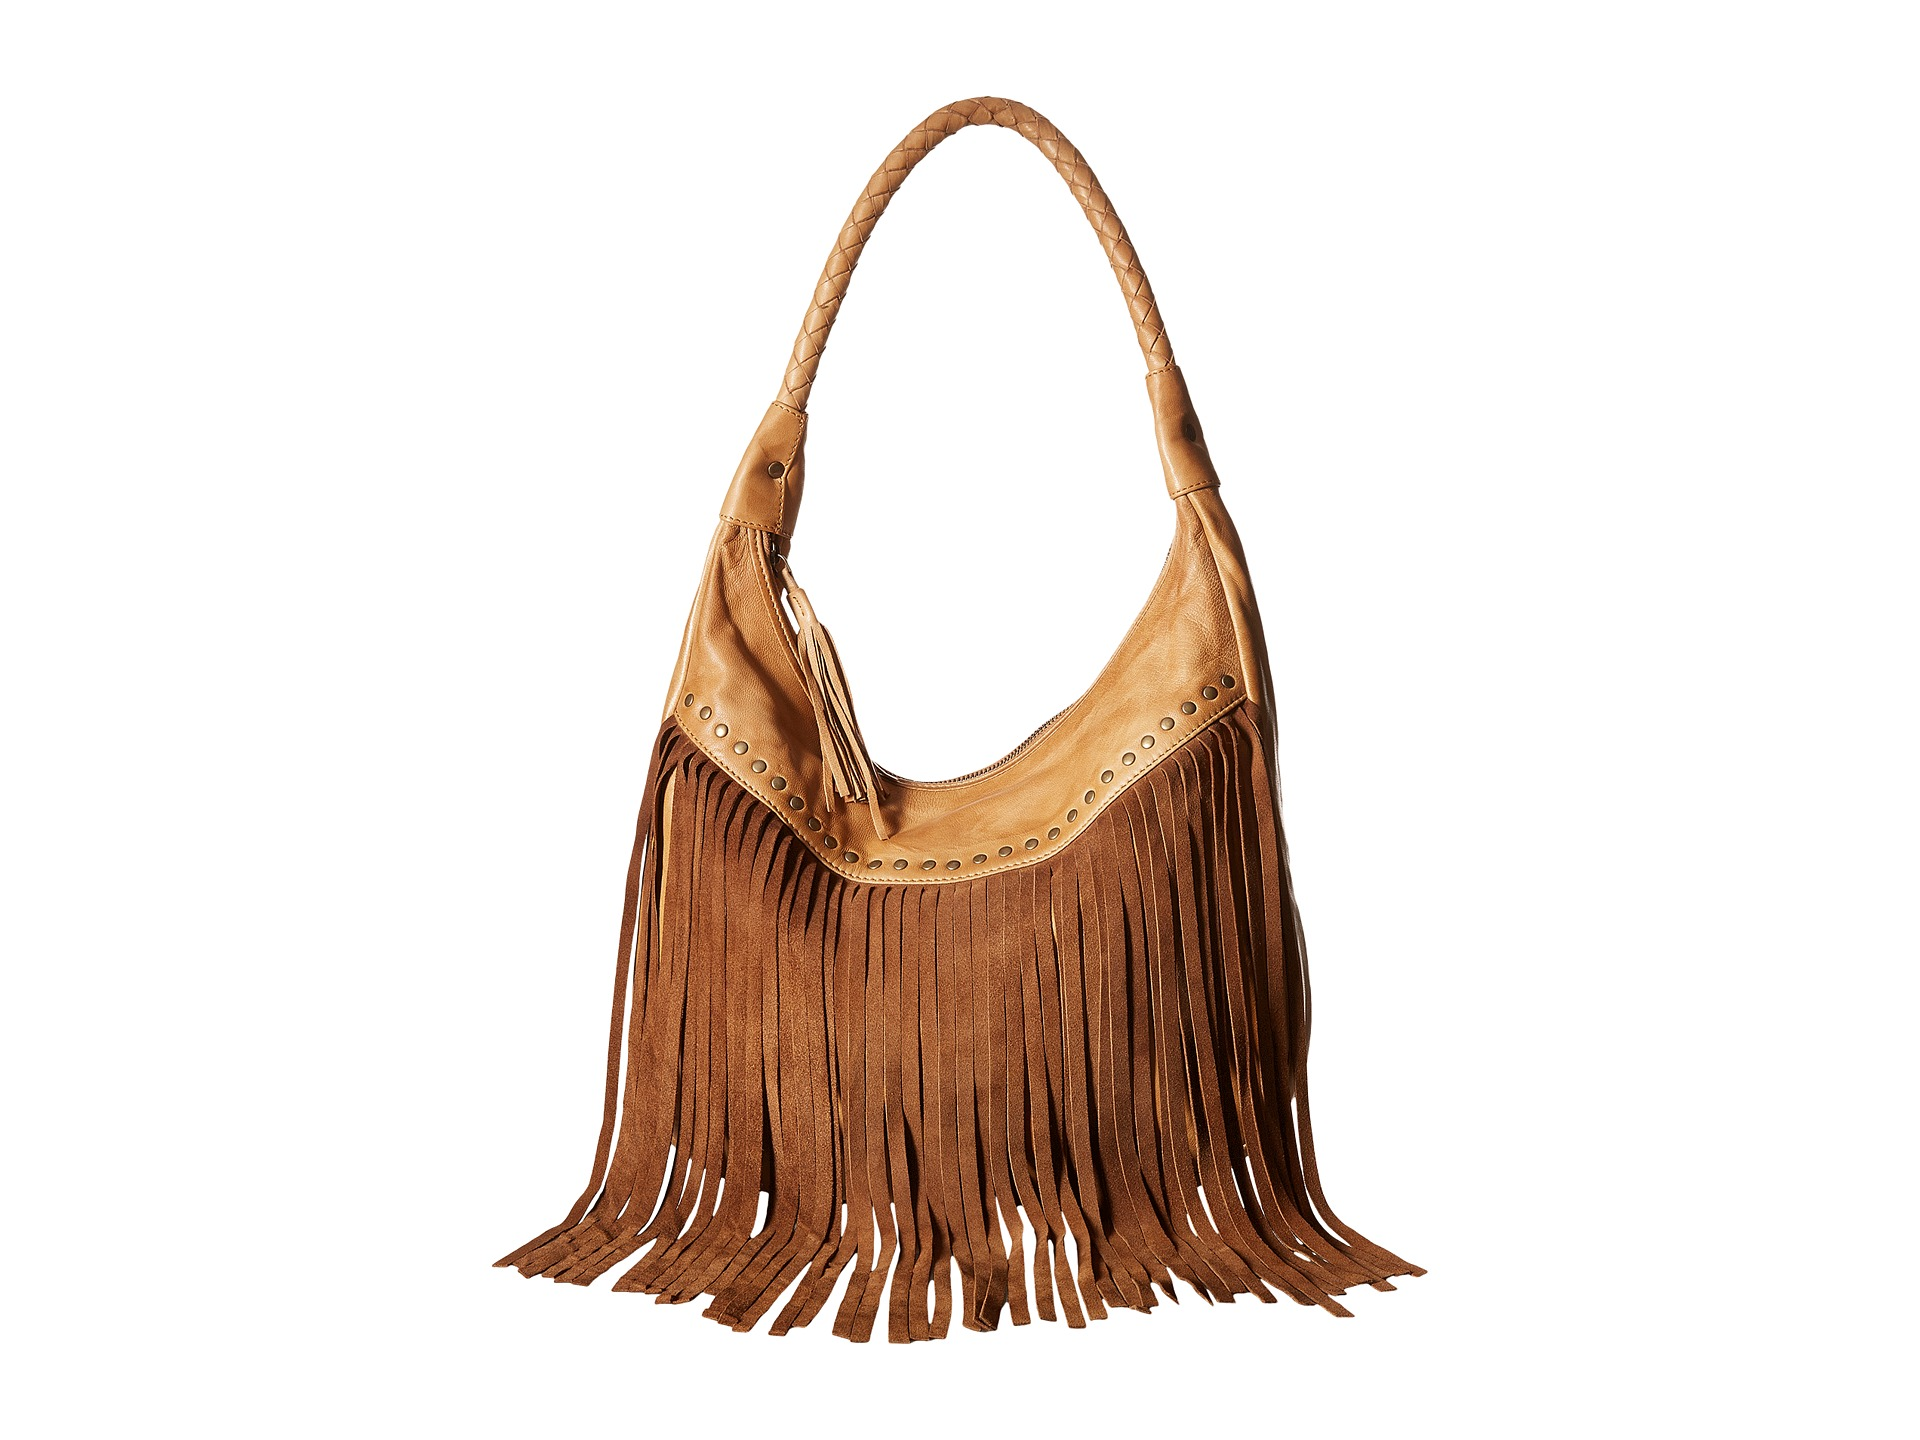 Shop fringe bag from Balenciaga, Bottega Veneta, Gucci and from private-dev.tk, Farfetch, Italist and many more. Find thousands of new high fashion items in one place.